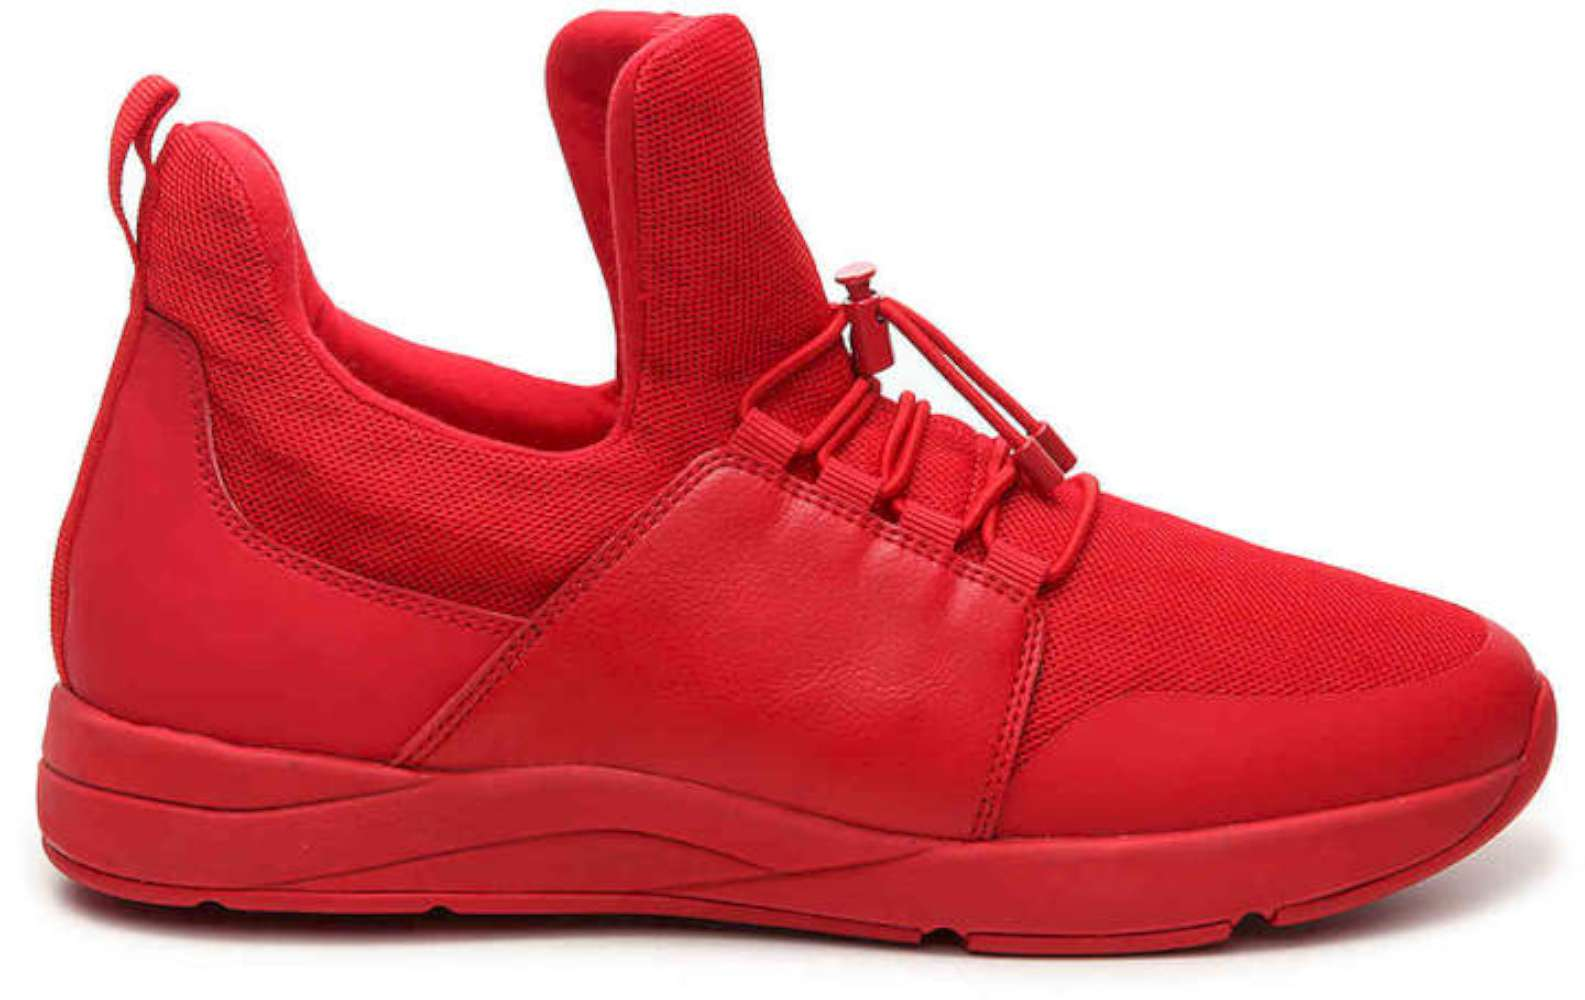 Aldo Womens Haeviel Hight Top Bungee Fashion Sneakers, Red, Size 8.0